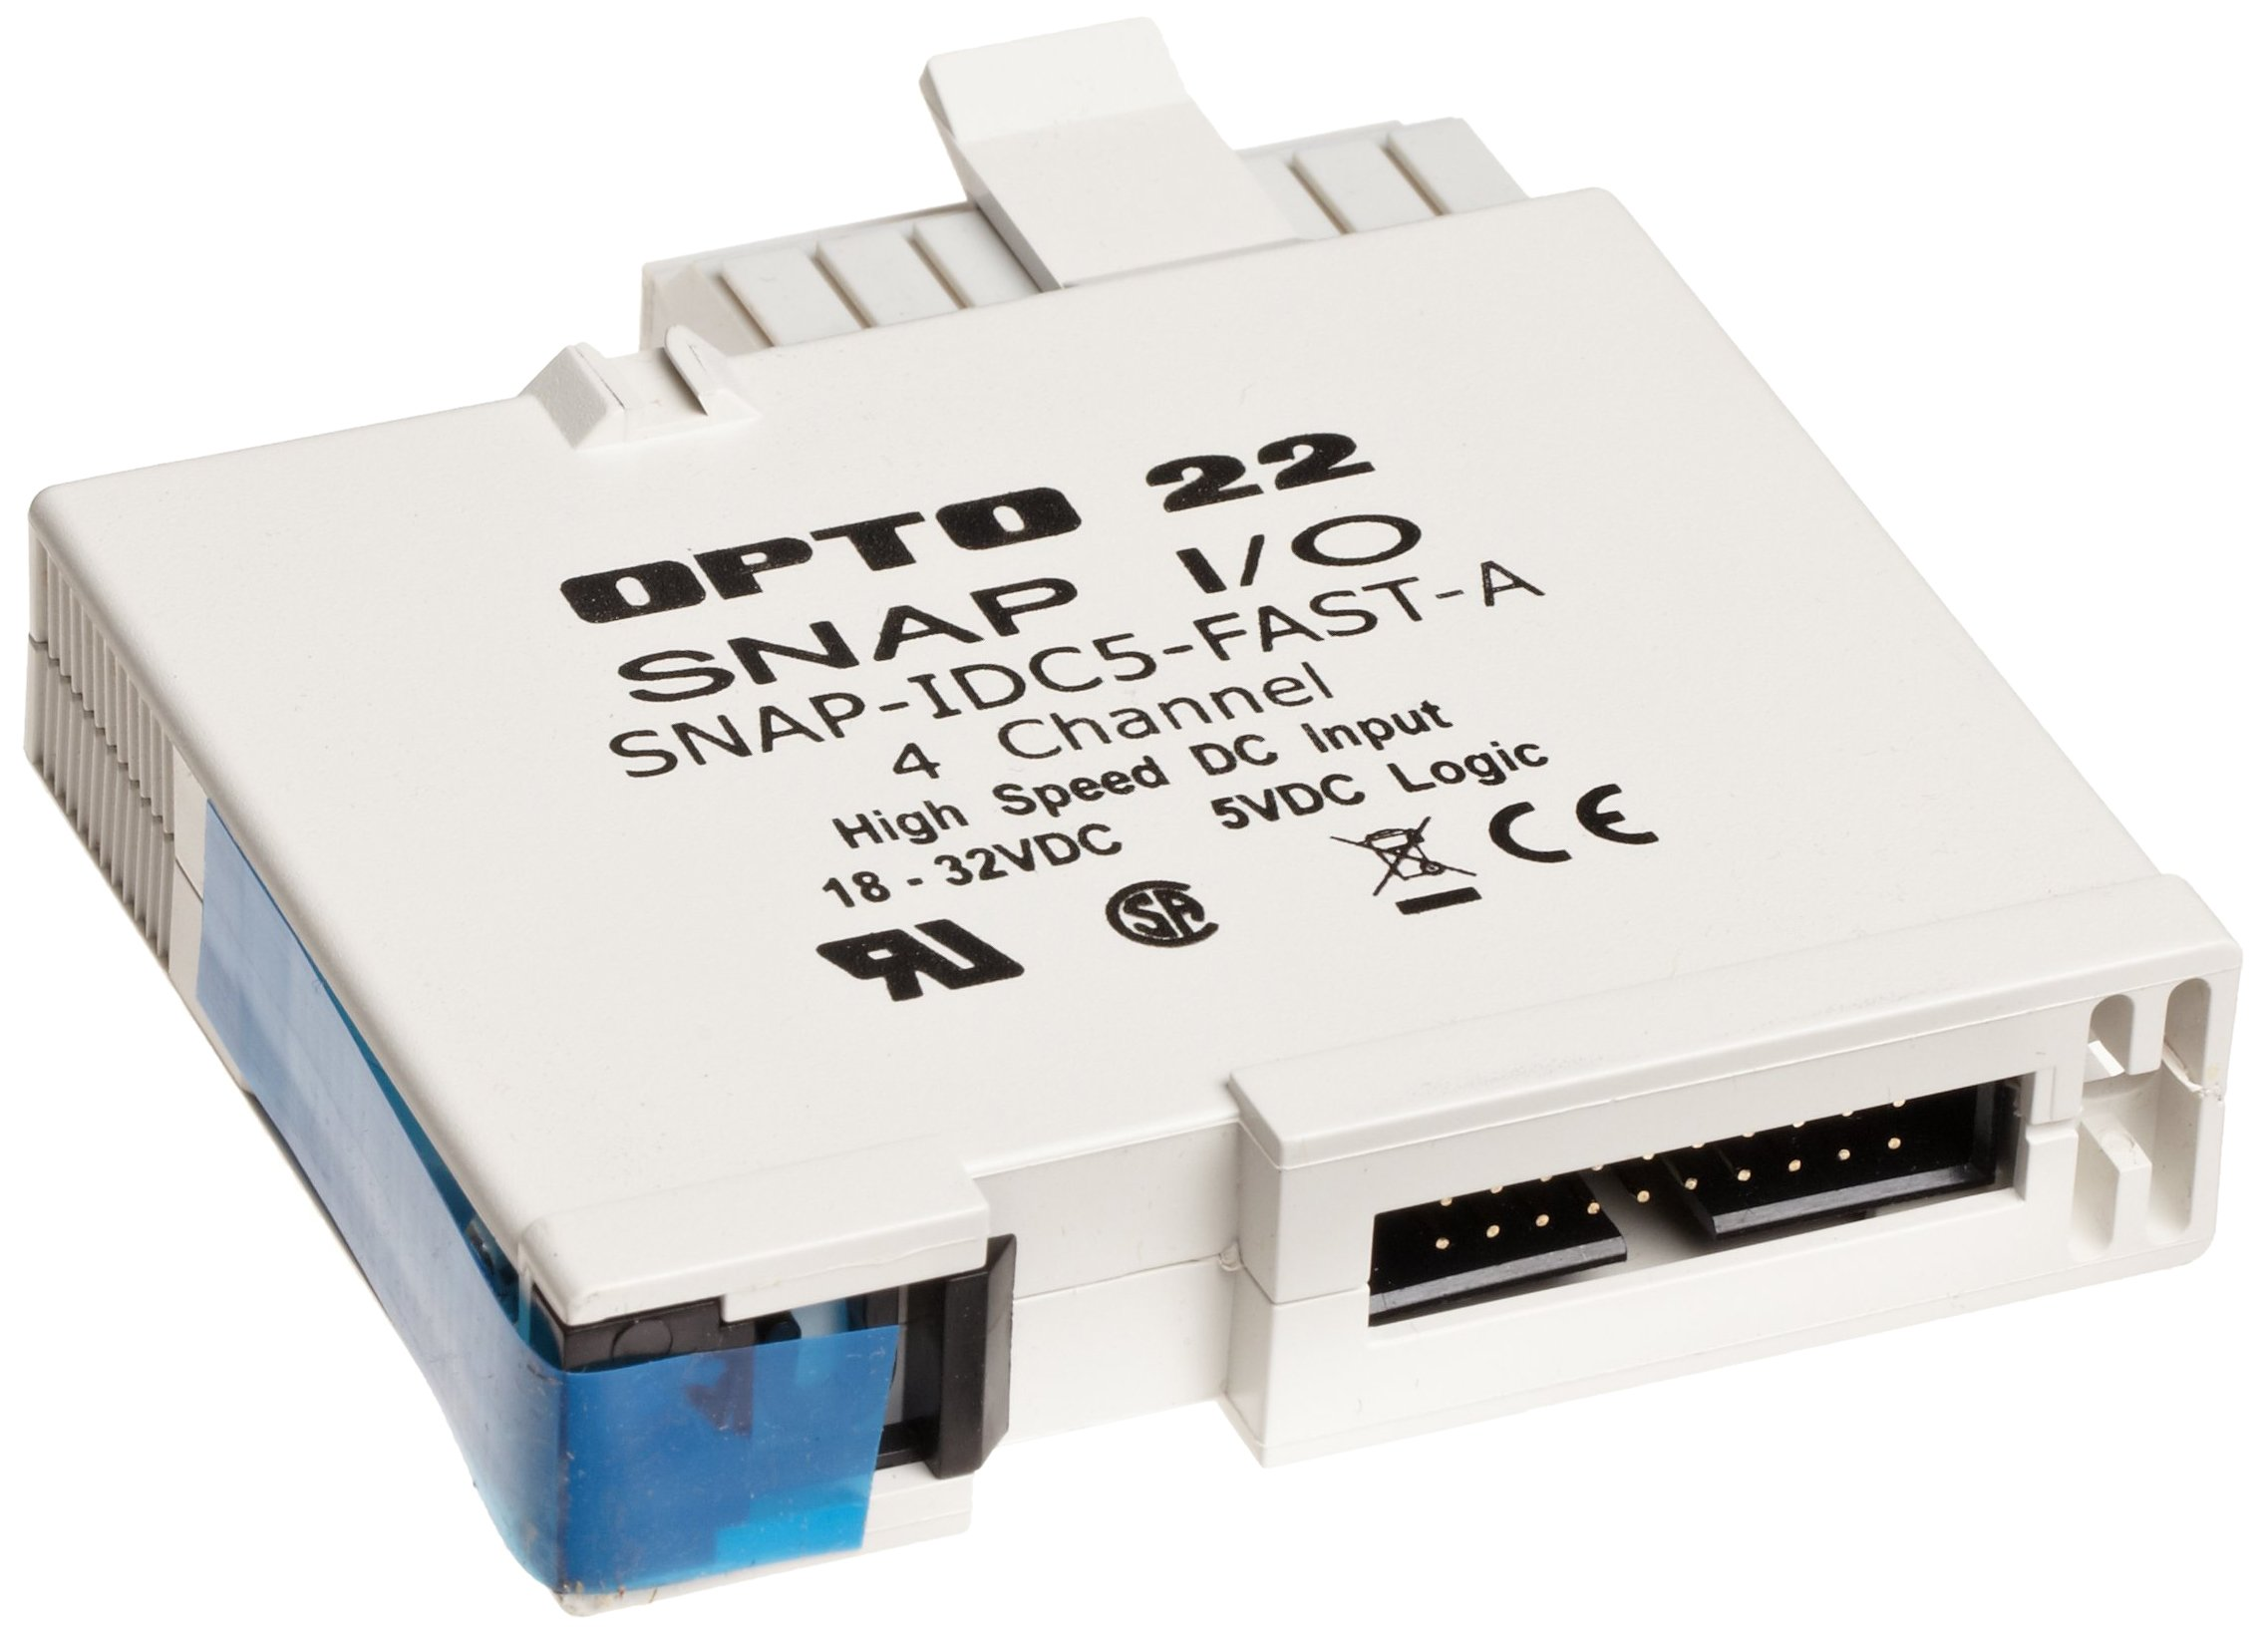 Opto 22 SNAP-IDC5-FAST-A - SNAP High-Speed Digital (Discrete) Input Module, 4-Channel, 18-32 VDC/VAC